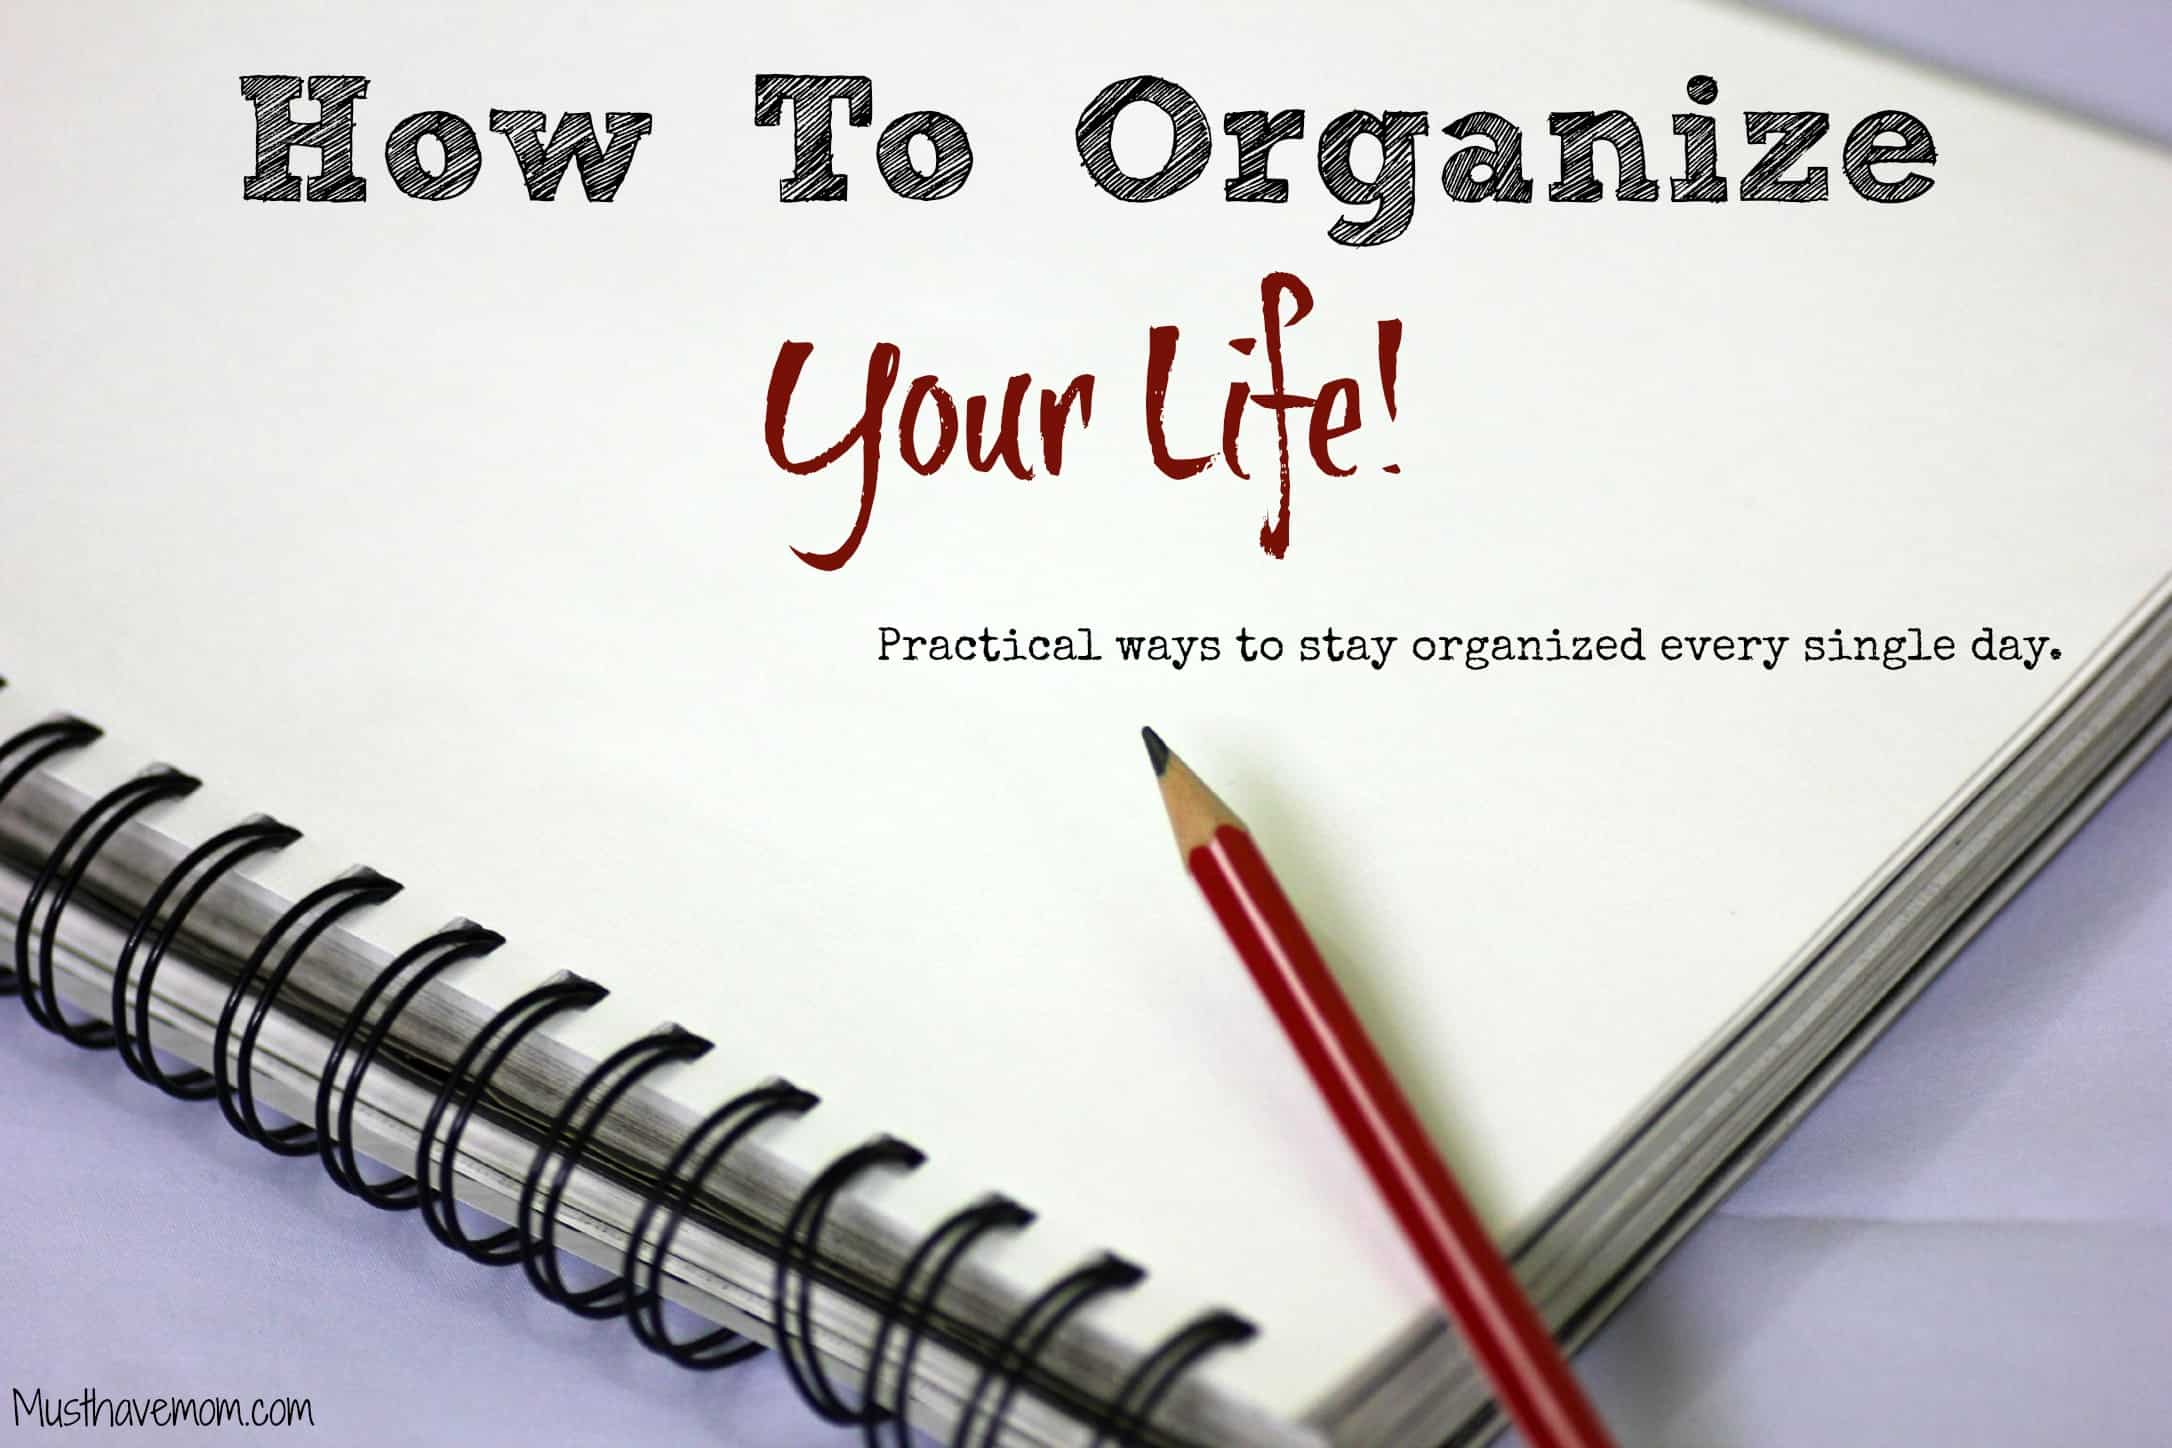 How To Organize Your Life! Practical Ways To Stay Organized Every Single Day.